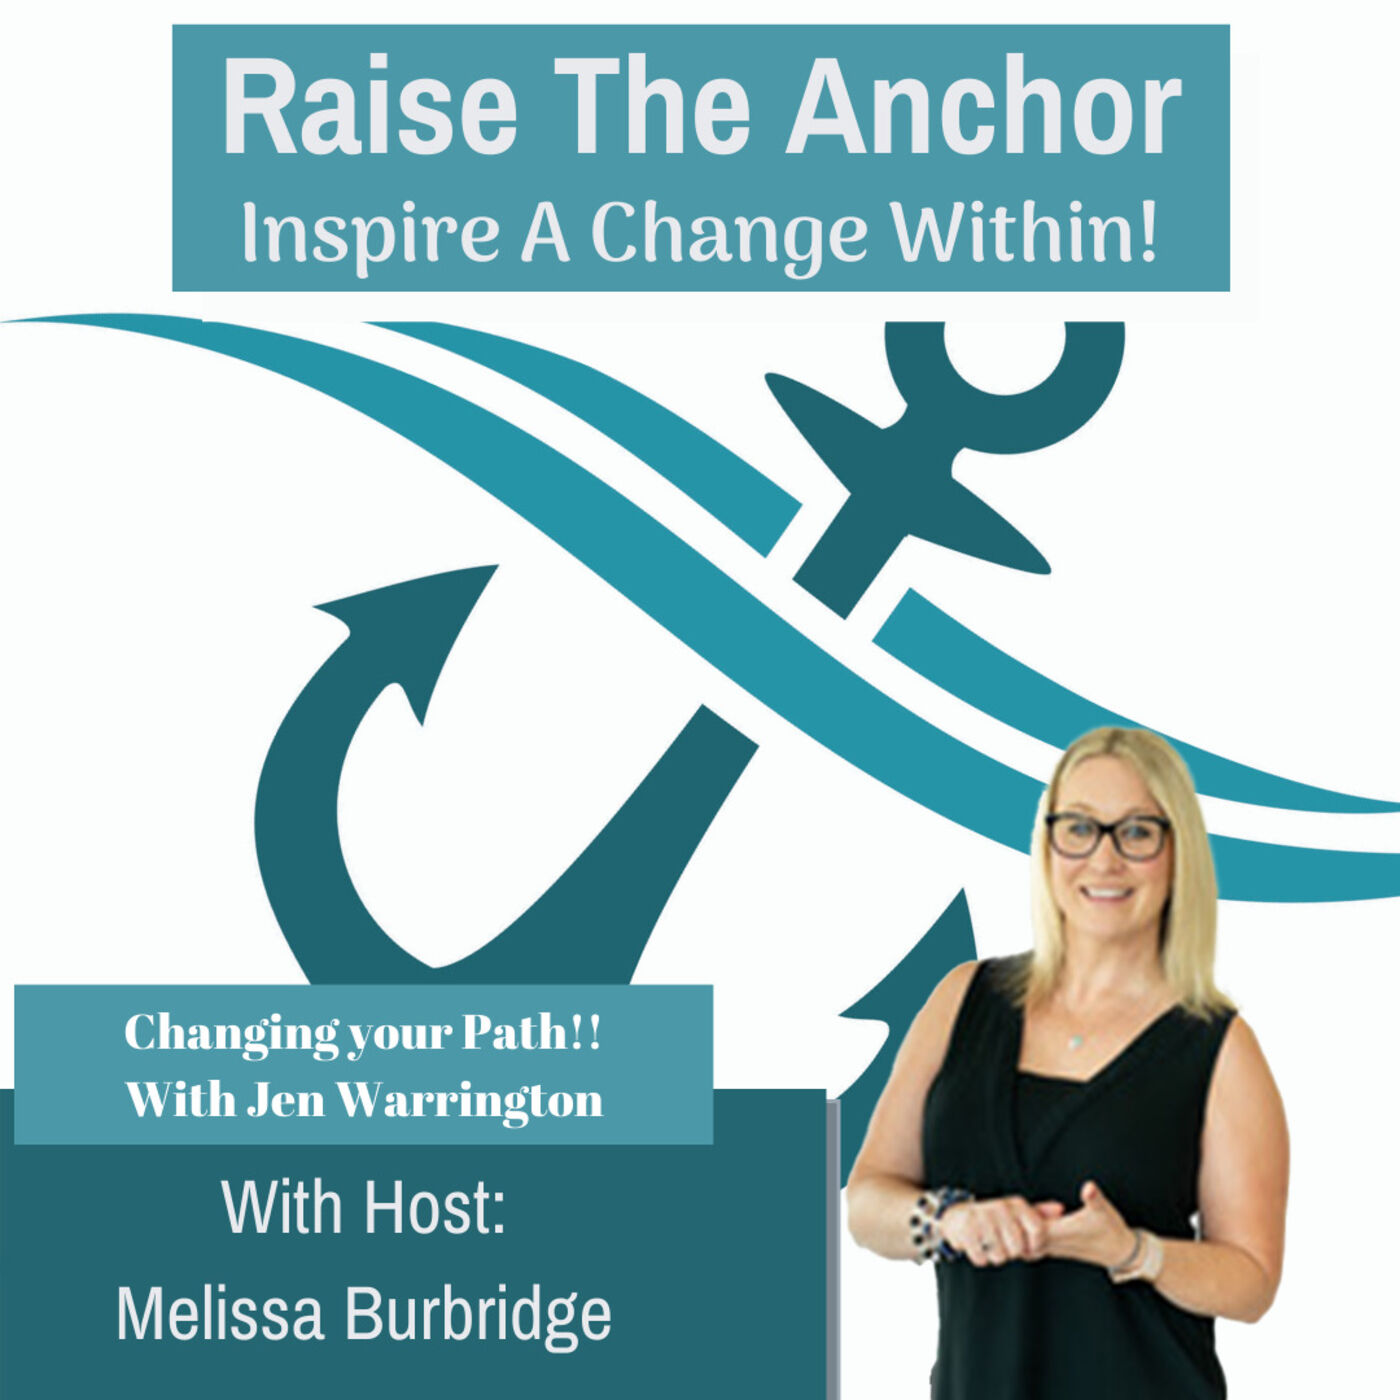 Changing your Path- with Jen Warrington